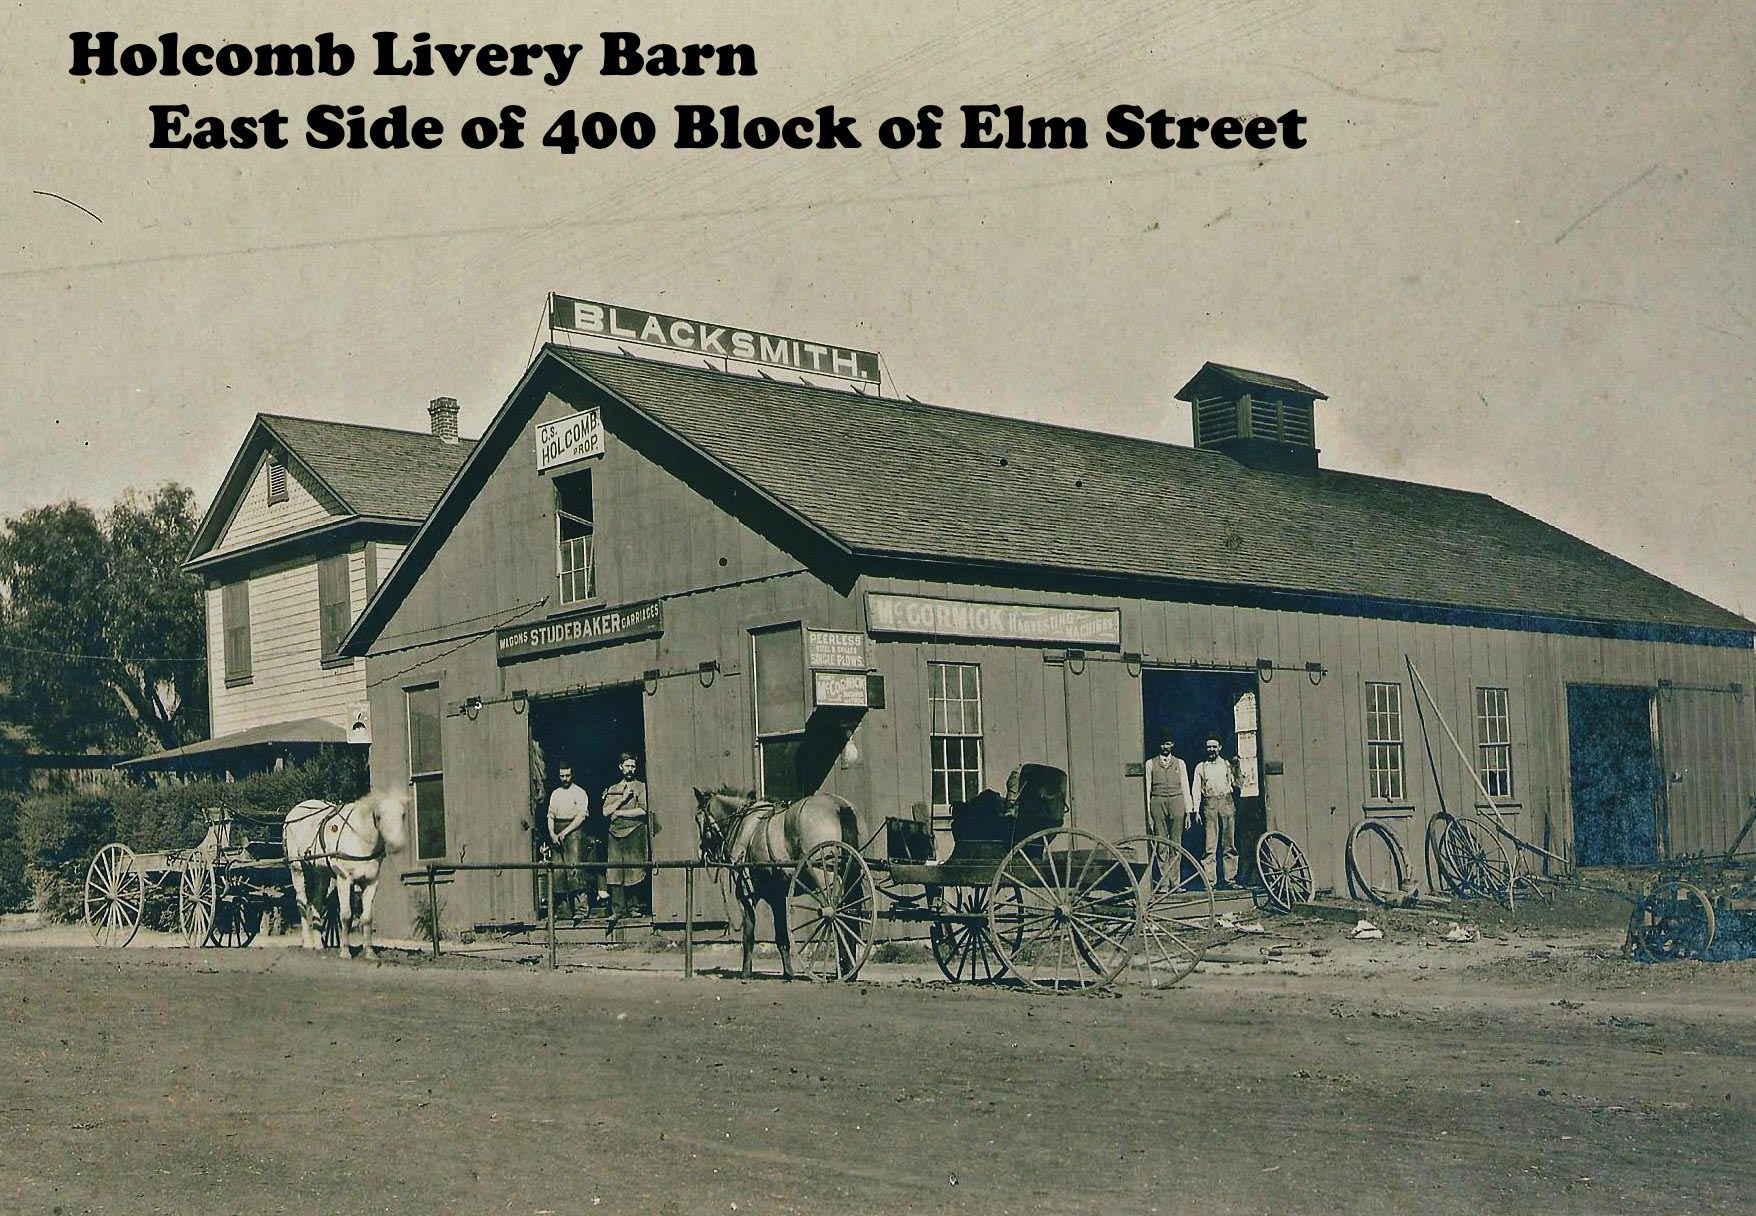 Holcomb Livery Barn - labeled